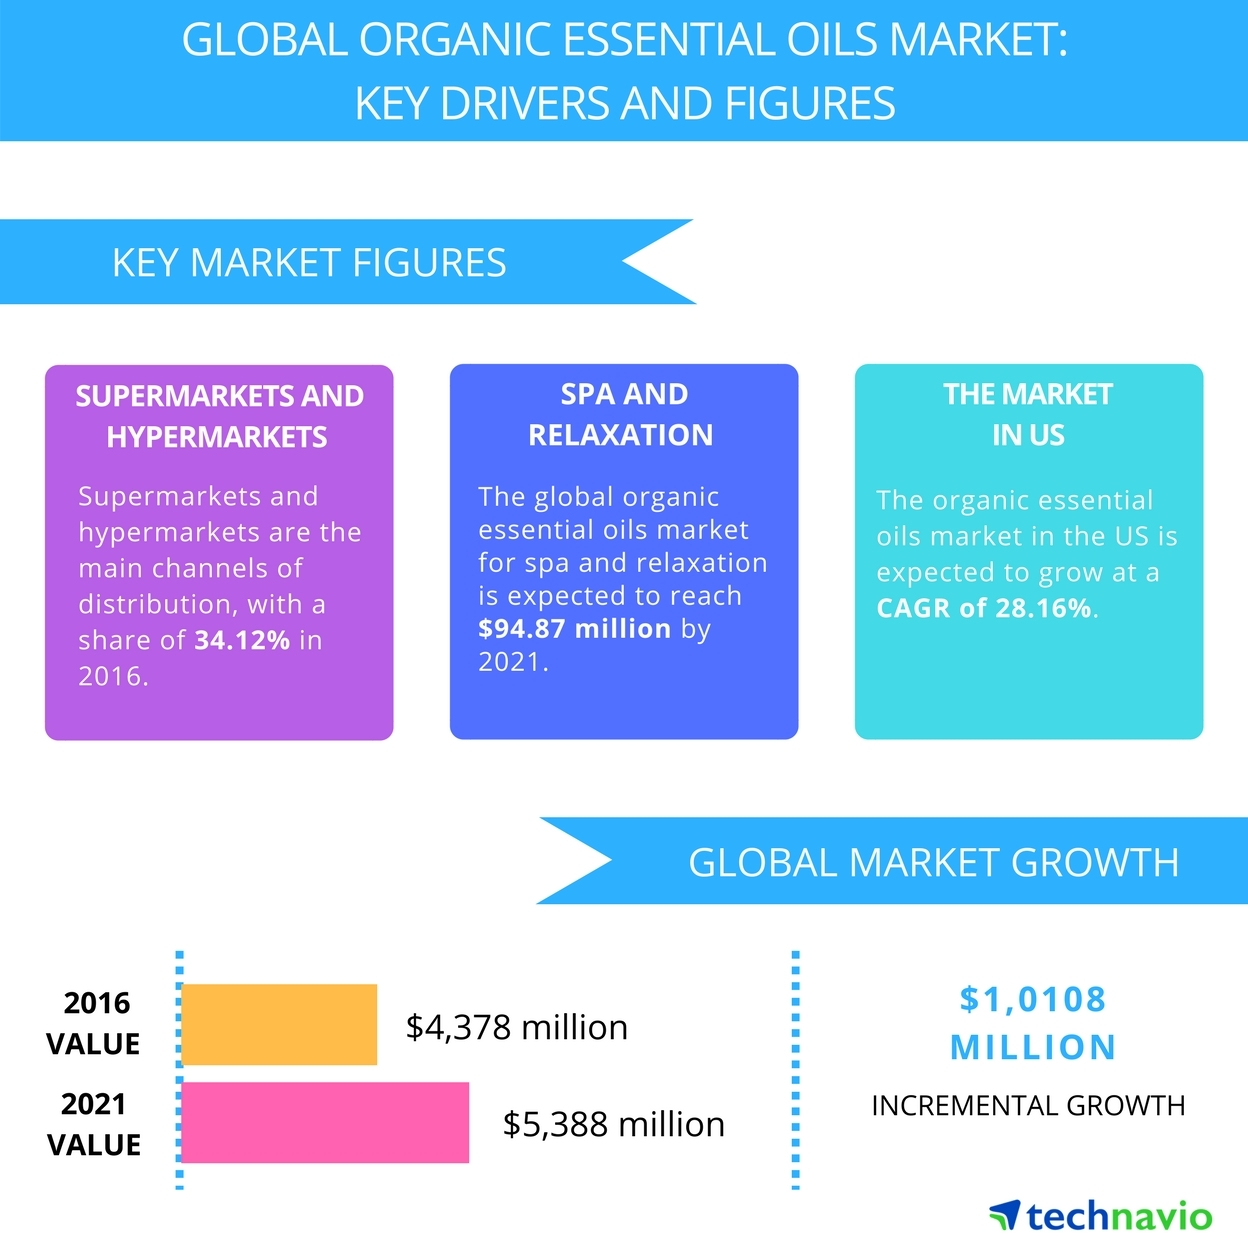 Best Essential Oil Diffuser 2021 Top 3 Trends Impacting the Global Organic Essential Oils Market